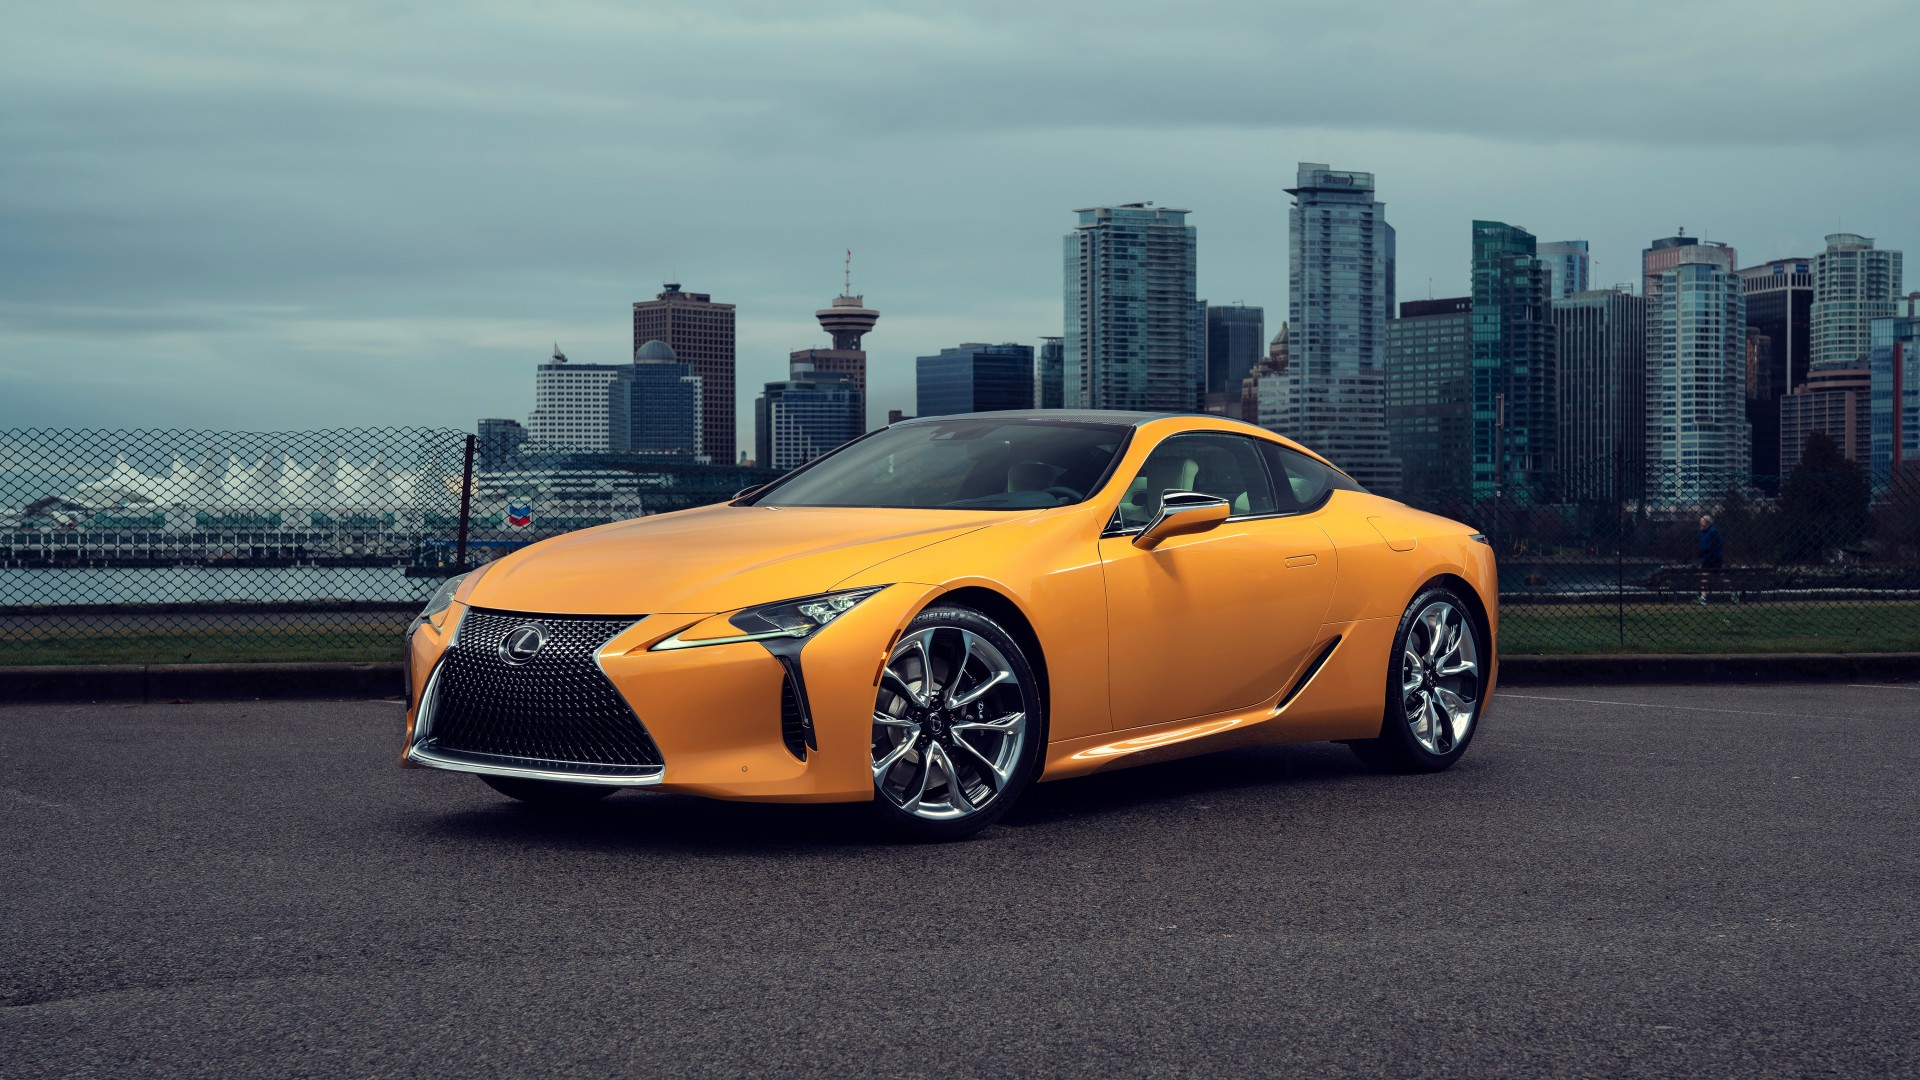 2019 Lexus LC 500 Inspiration Series 5K Wallpaper